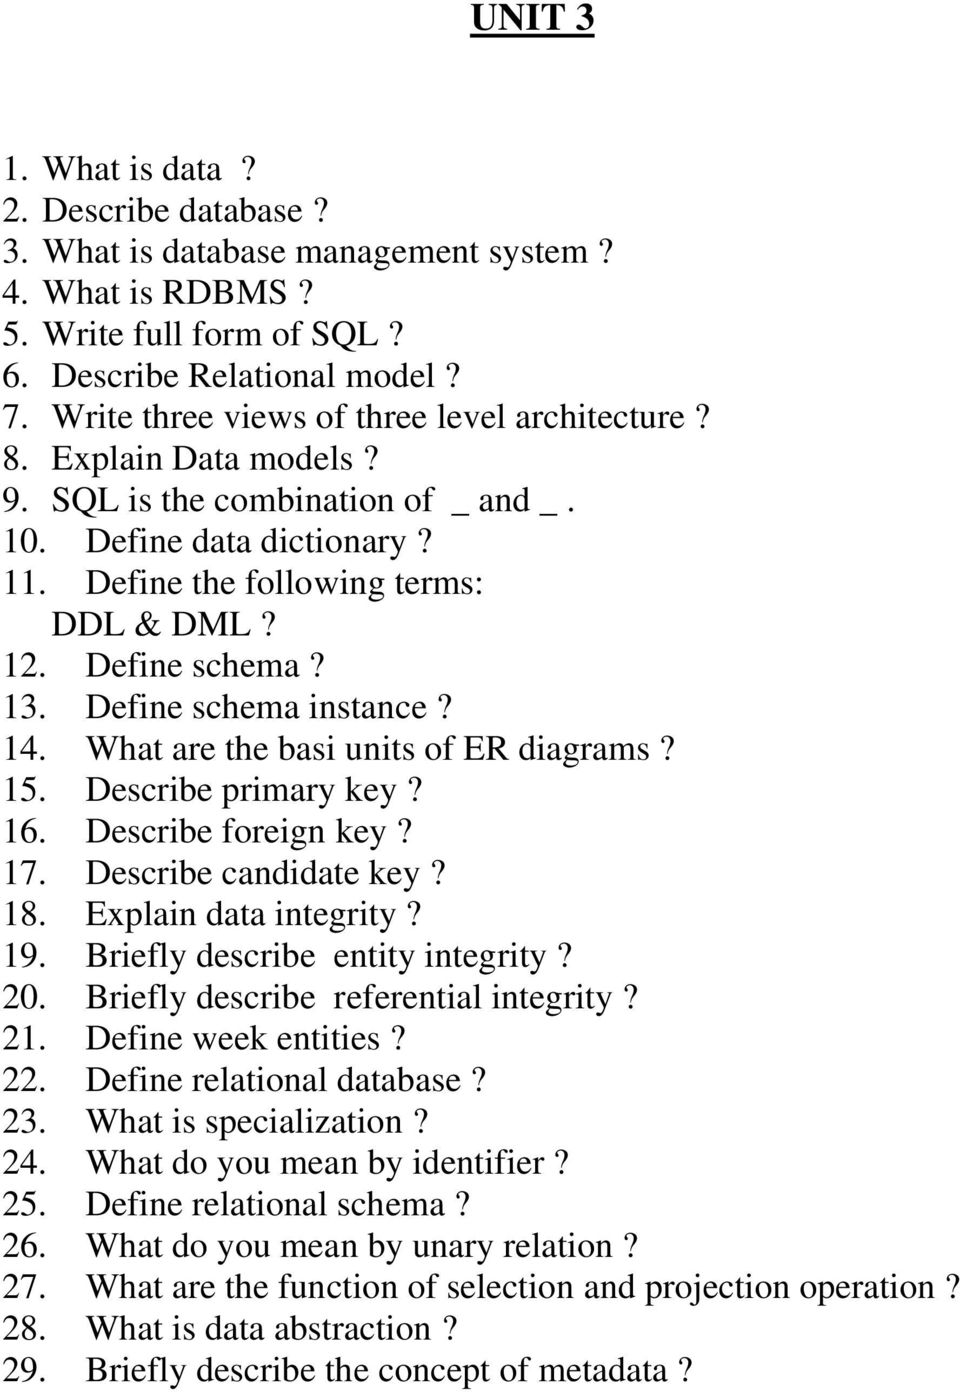 13. Define schema instance? 14. What are the basi units of ER diagrams? 15. Describe primary key? 16. Describe foreign key? 17. Describe candidate key? 18. Explain data integrity? 19.